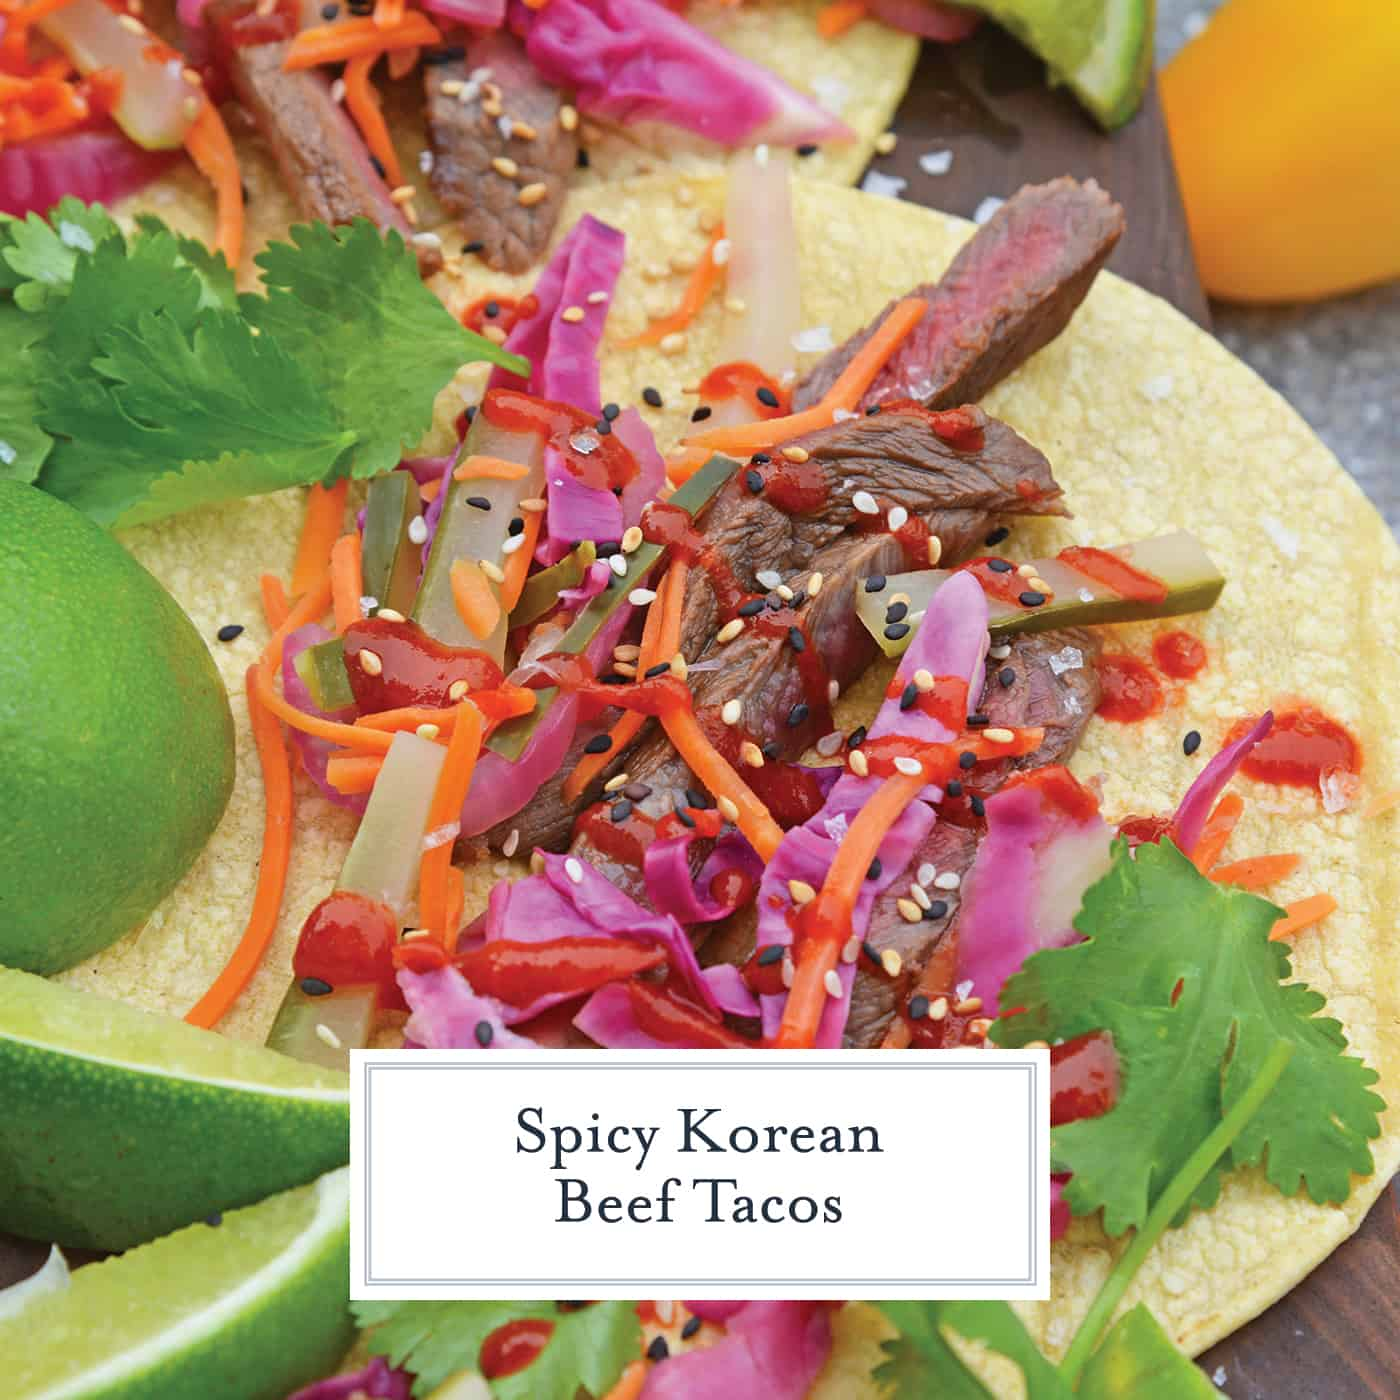 Korean Beef Tacos are stuffed with seasoned bulgogi beef, fresh veggies, and spicy sauce! These are the best Korean tacos you will ever eat! Easy and tasty! #Koreanbeeftacos #bulgogitacos www.savoryexperiments.com